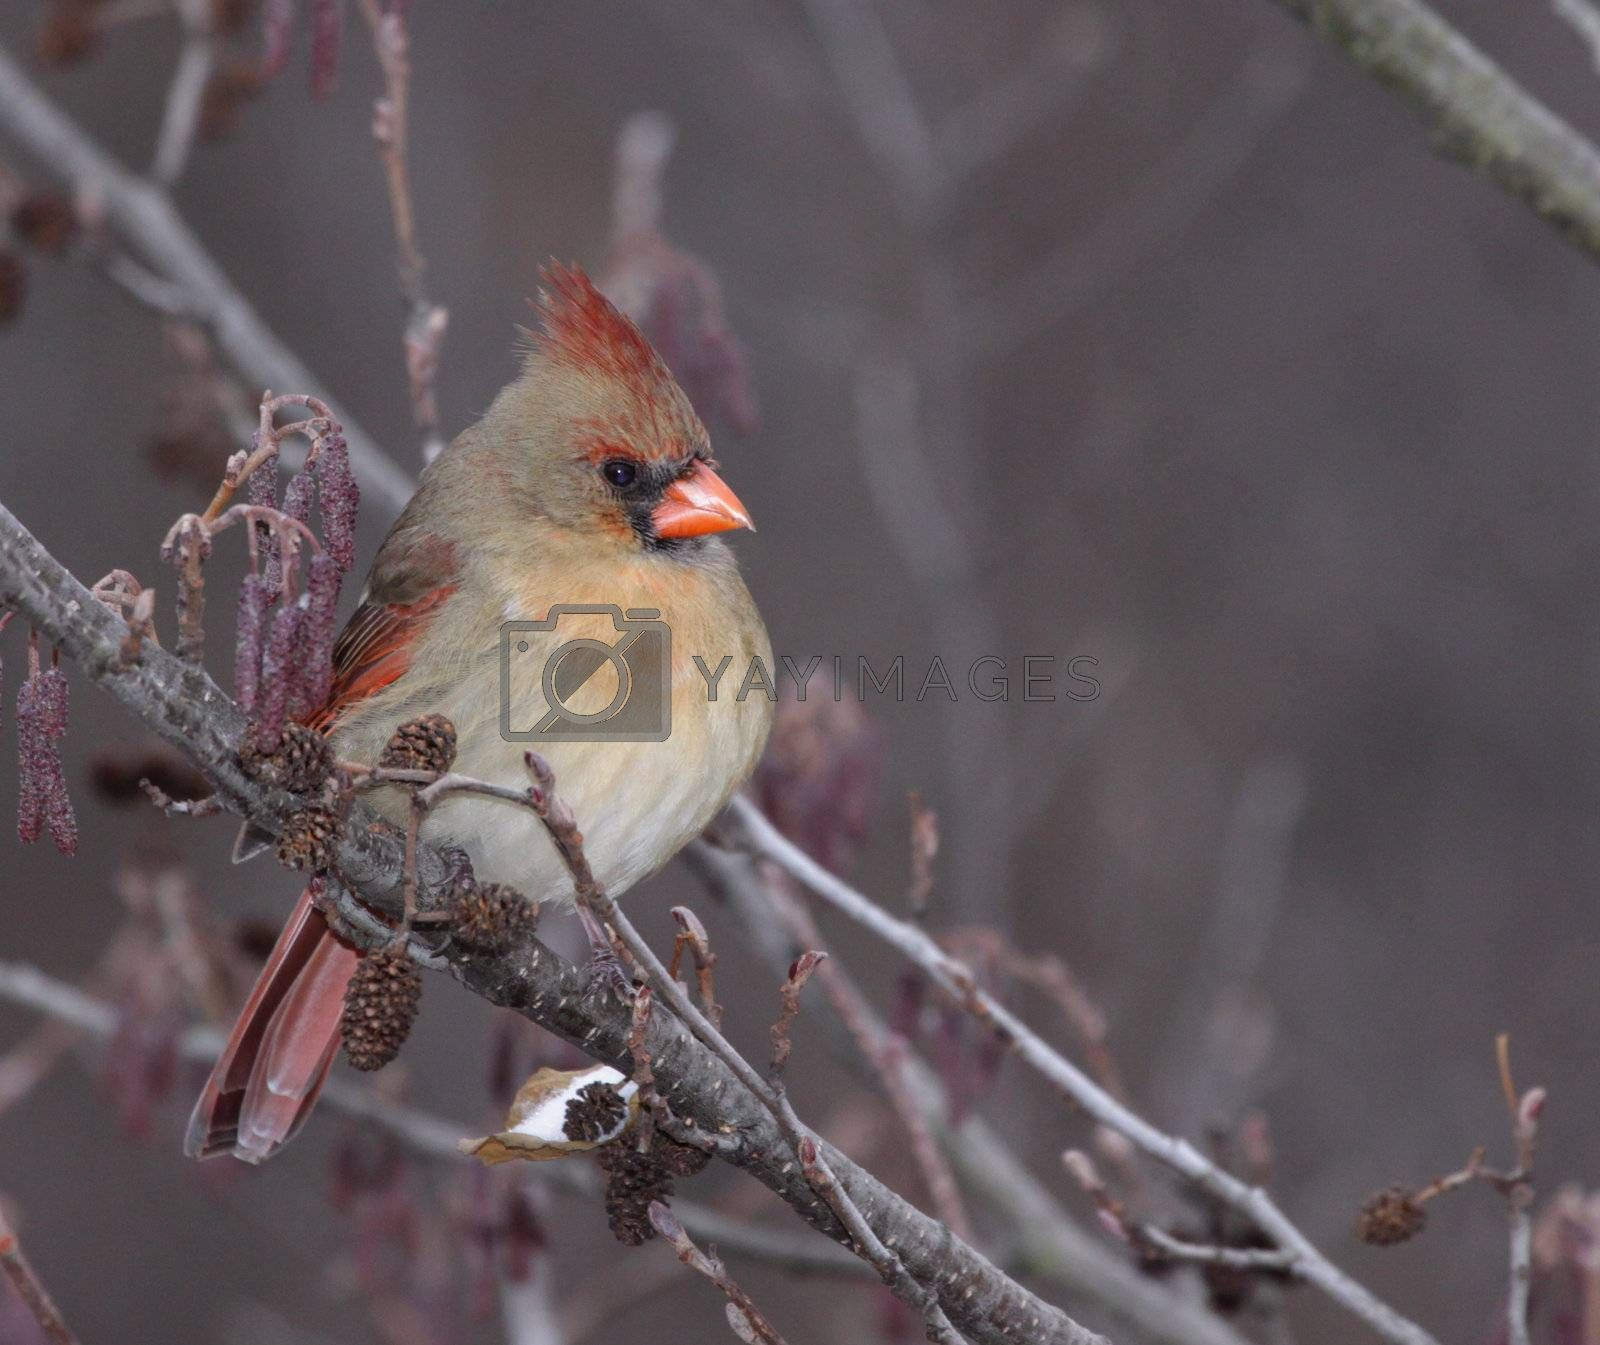 A female Northern Cardinal (Cardinalis cardinalis) sitting in a tree, in winter.  Shot in Southern Ontario, Canada.